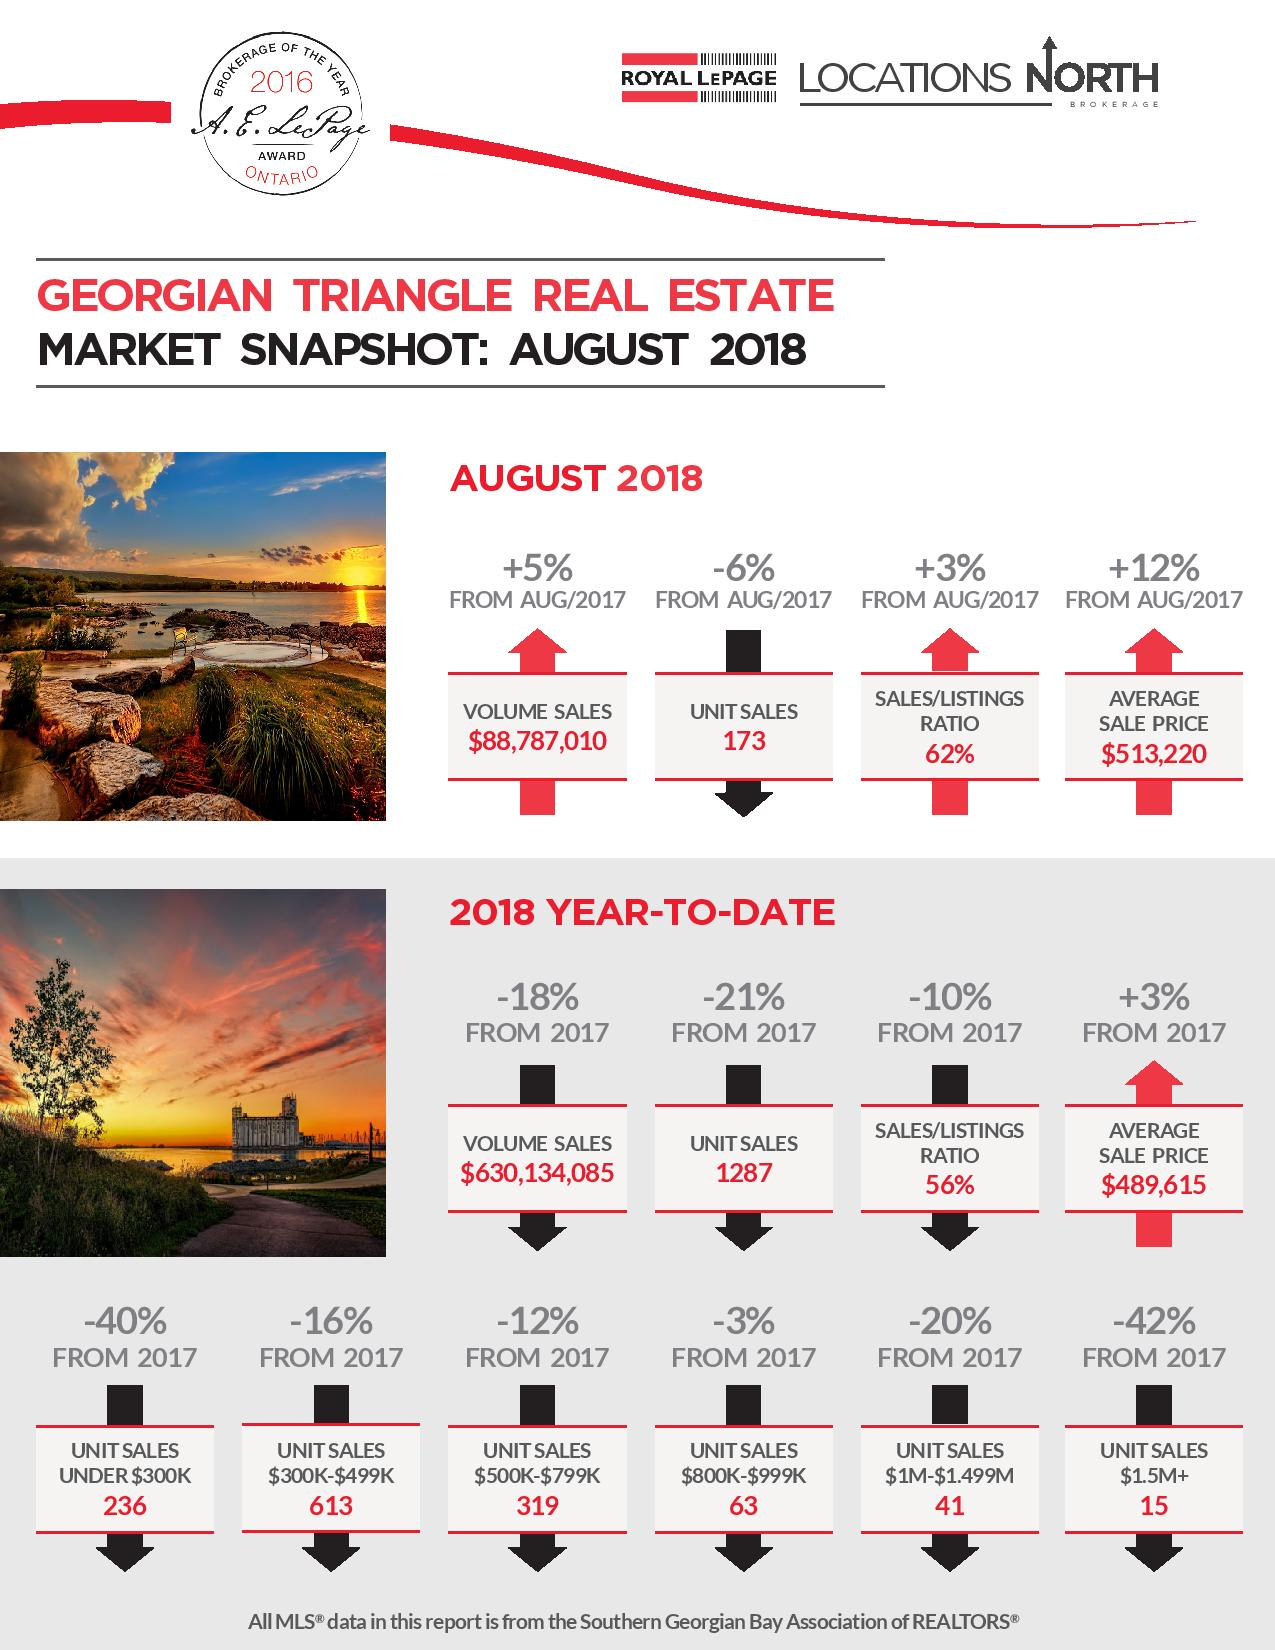 Georgian Triangle Real Estate Market Snapshot: August 2018